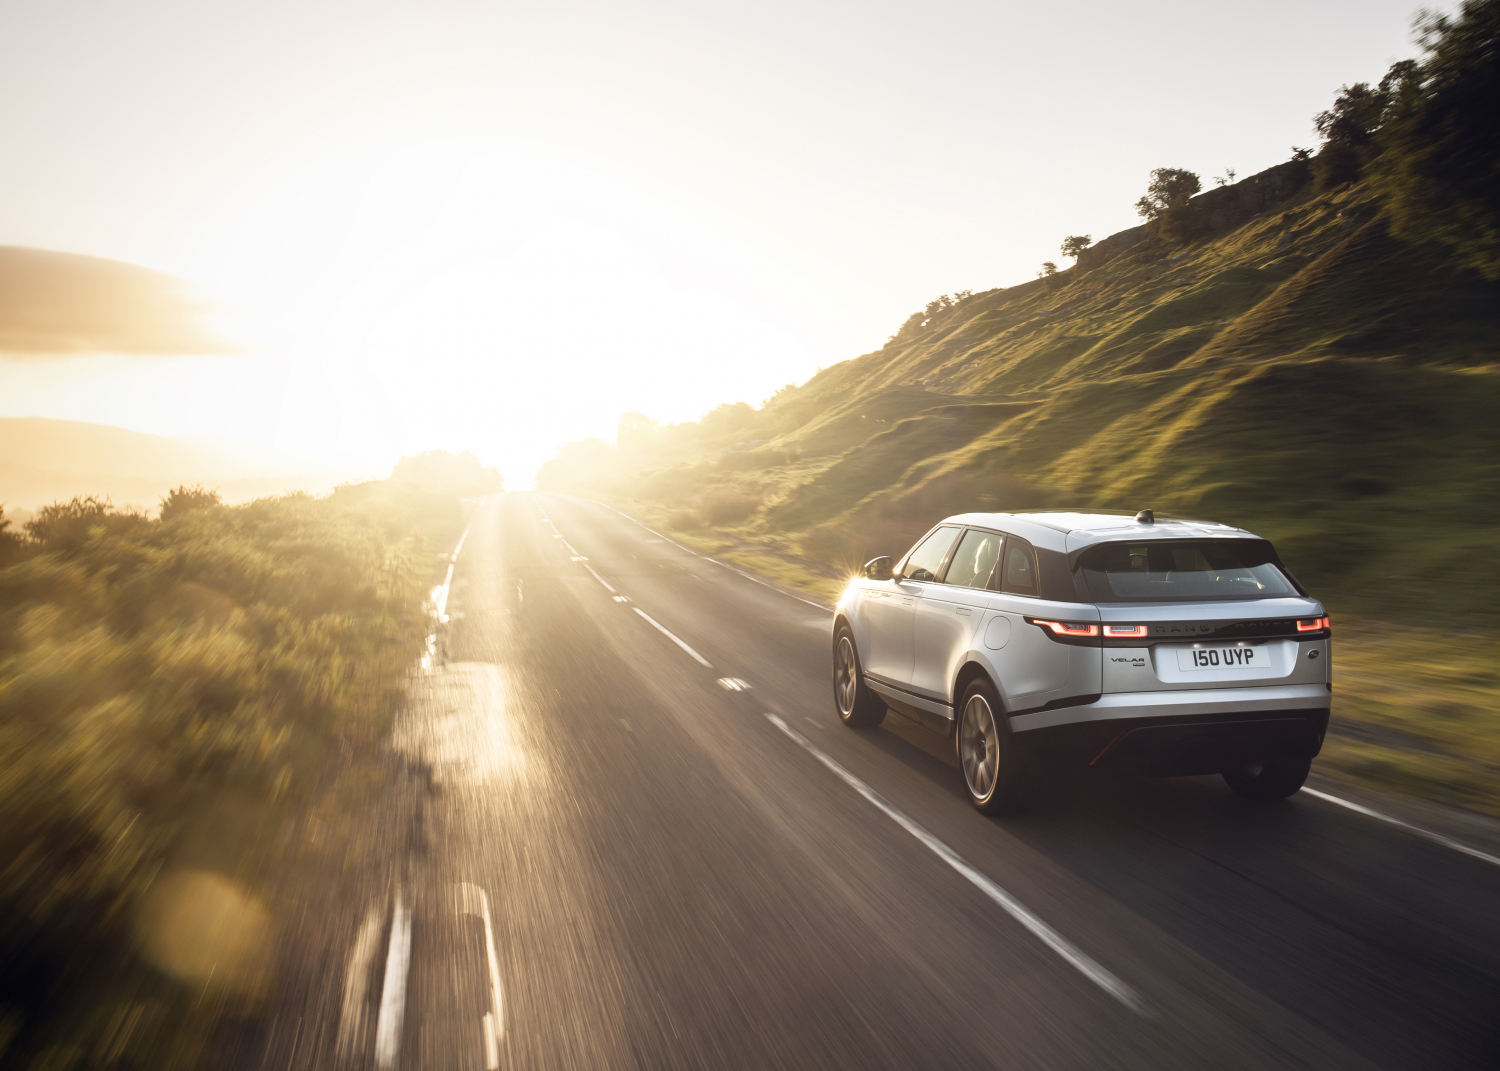 Range Rover Velar Electrifies with Plug-in Hybrid and State-of-the-art Infotainment - Image 3